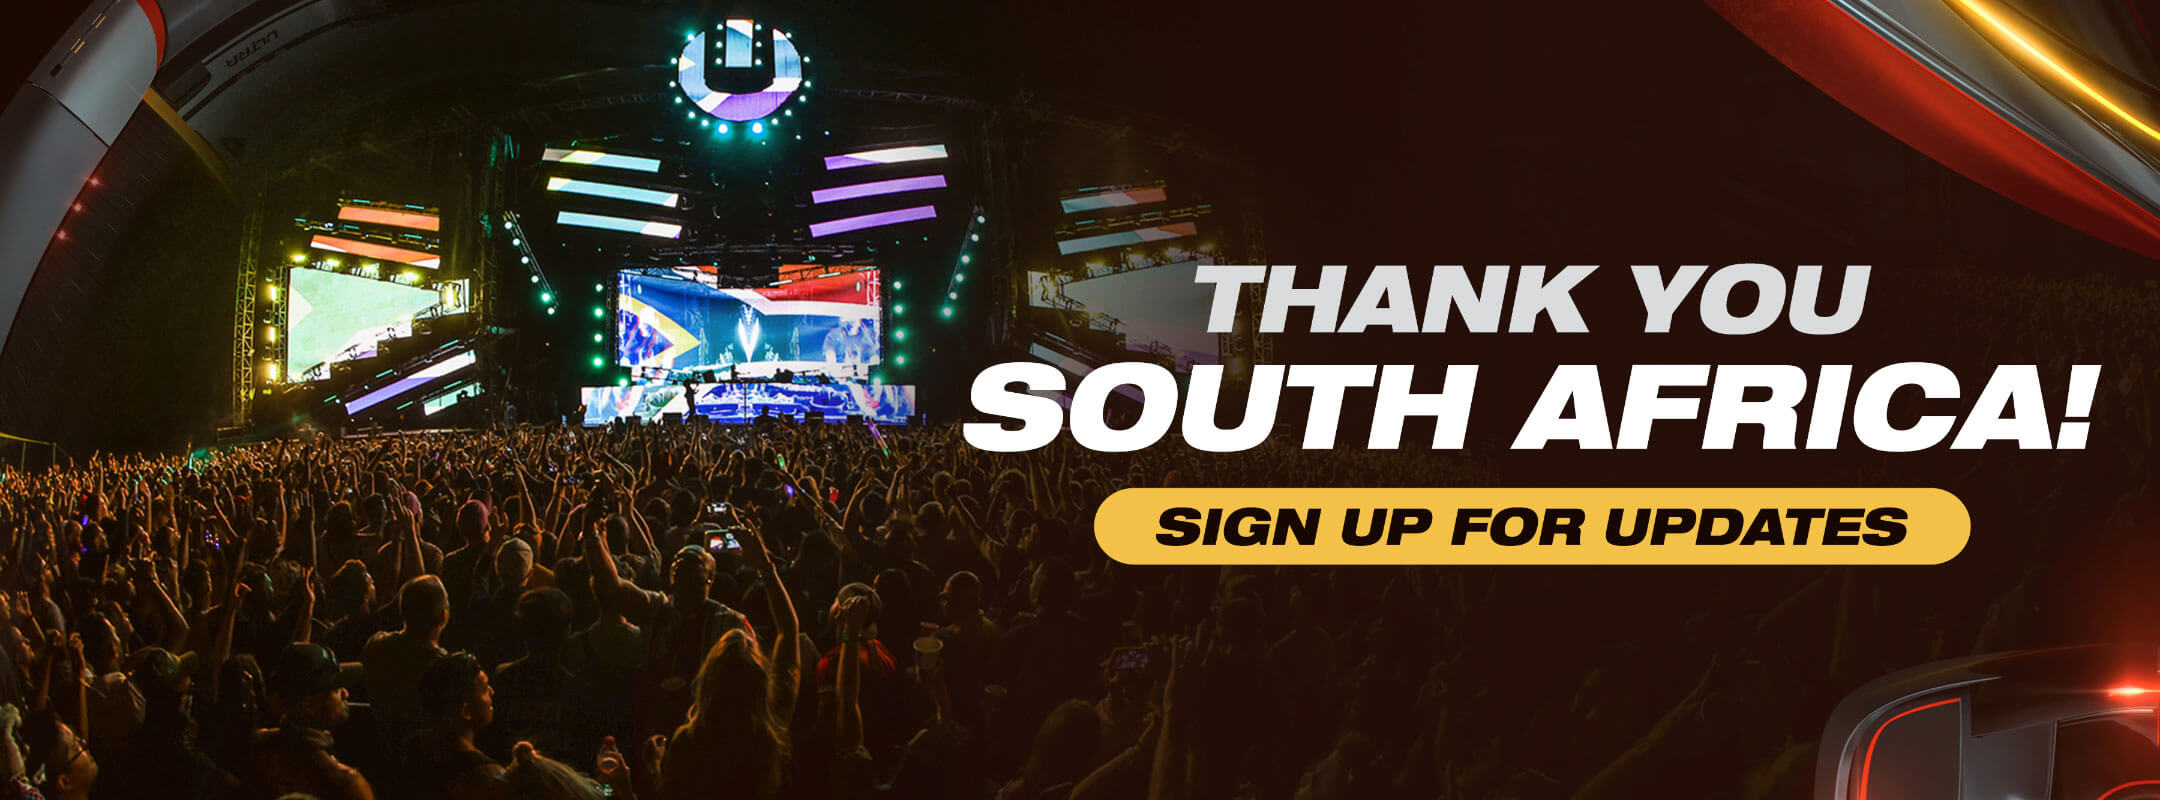 Subscribe for Updates to Ultra South Africa